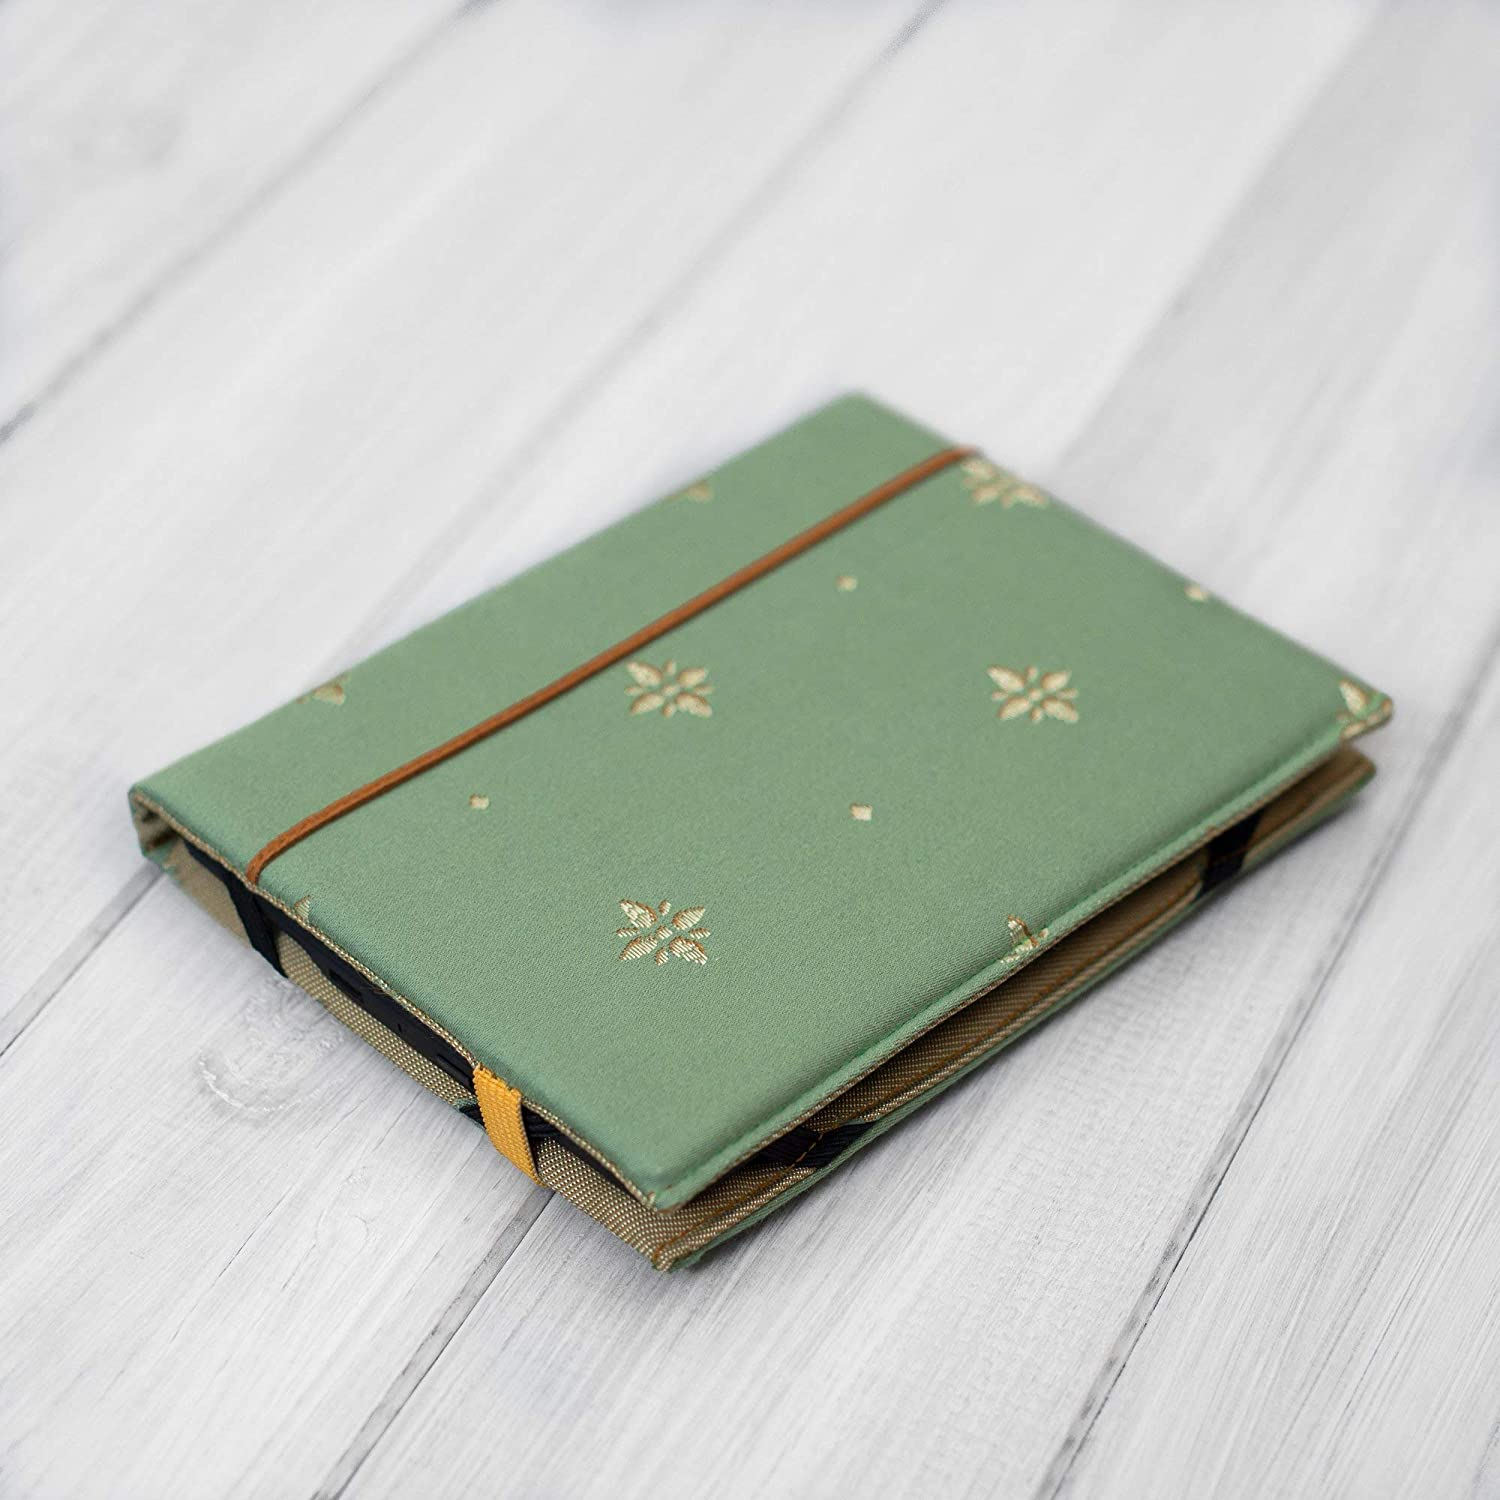 eReader green and gold Hardcover Kindle/Paperwhite / Voyage/Touch / all Generations/case ebook cover handmade in UK New 2018 design